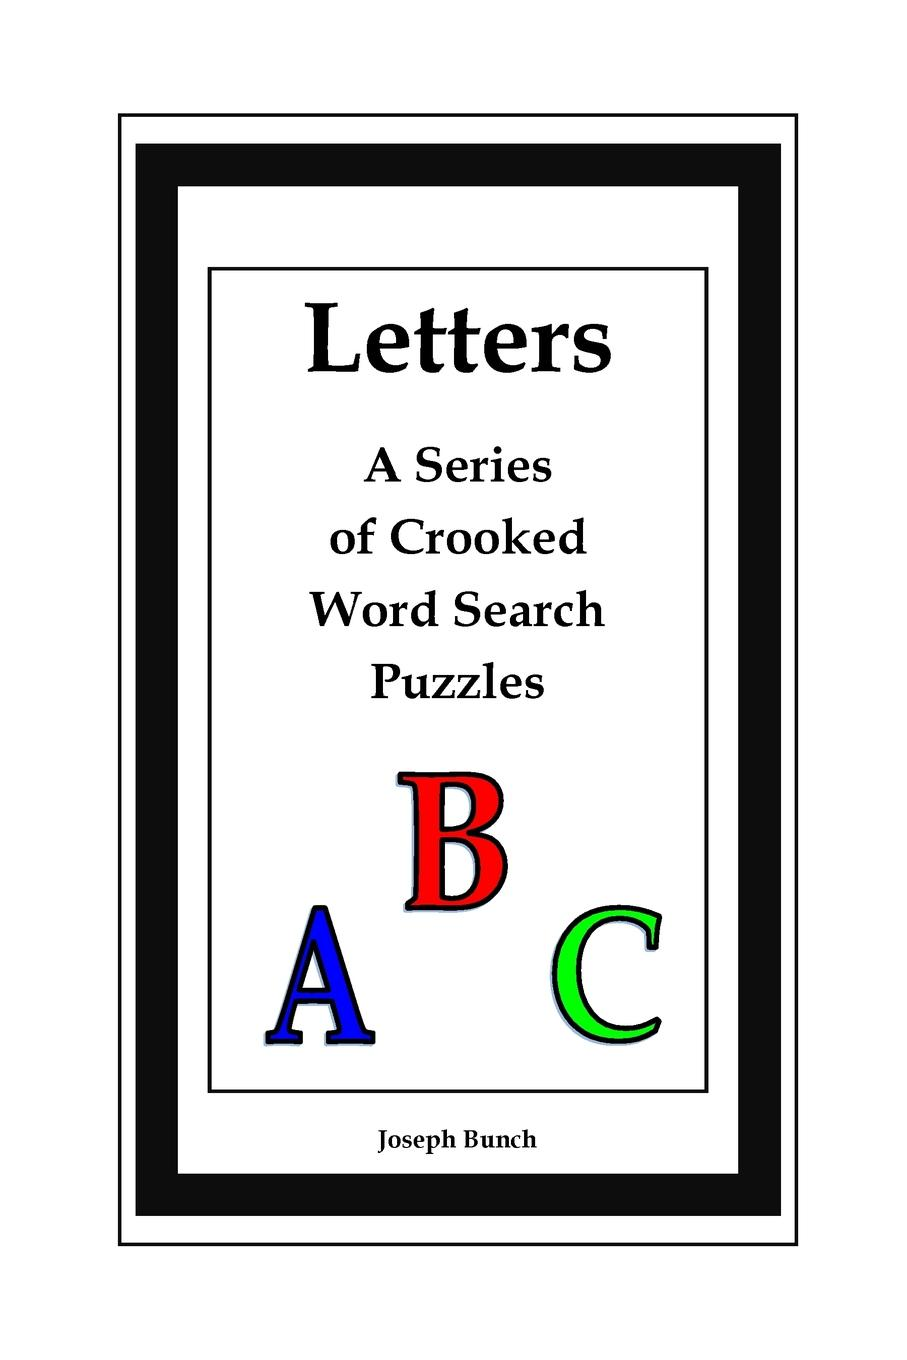 Joseph Bunch Letters. A Series of Crooked Word Search Puzzles